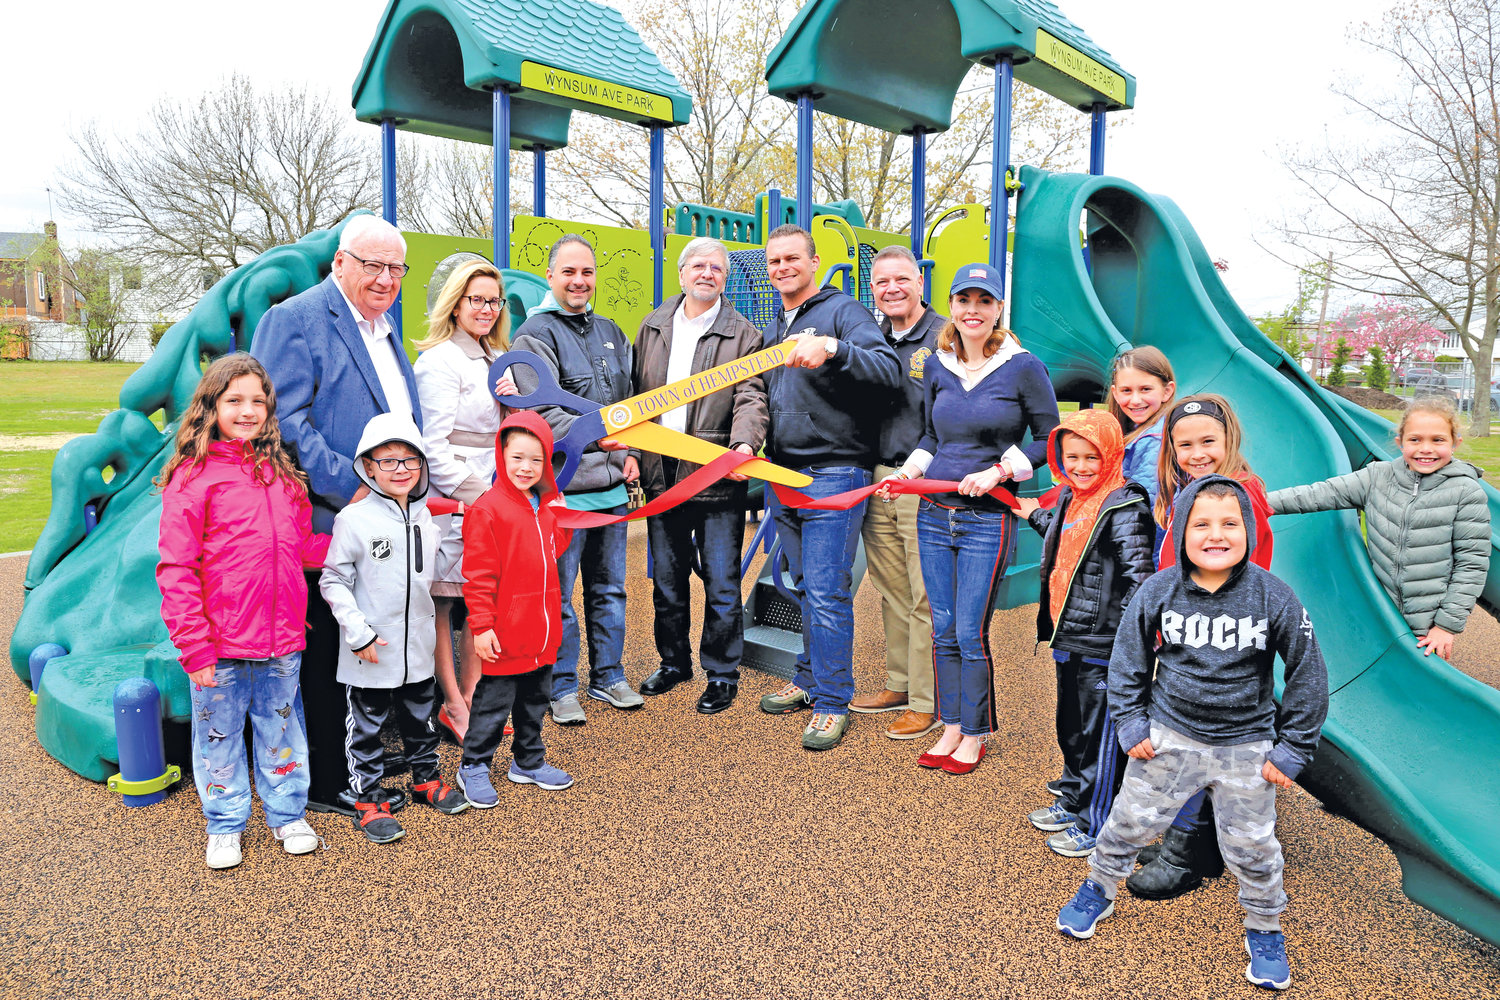 After a five-year effort by the South Merrick Community Civic Association's Let's Play 11566 committee, the playground opened in April 2019.